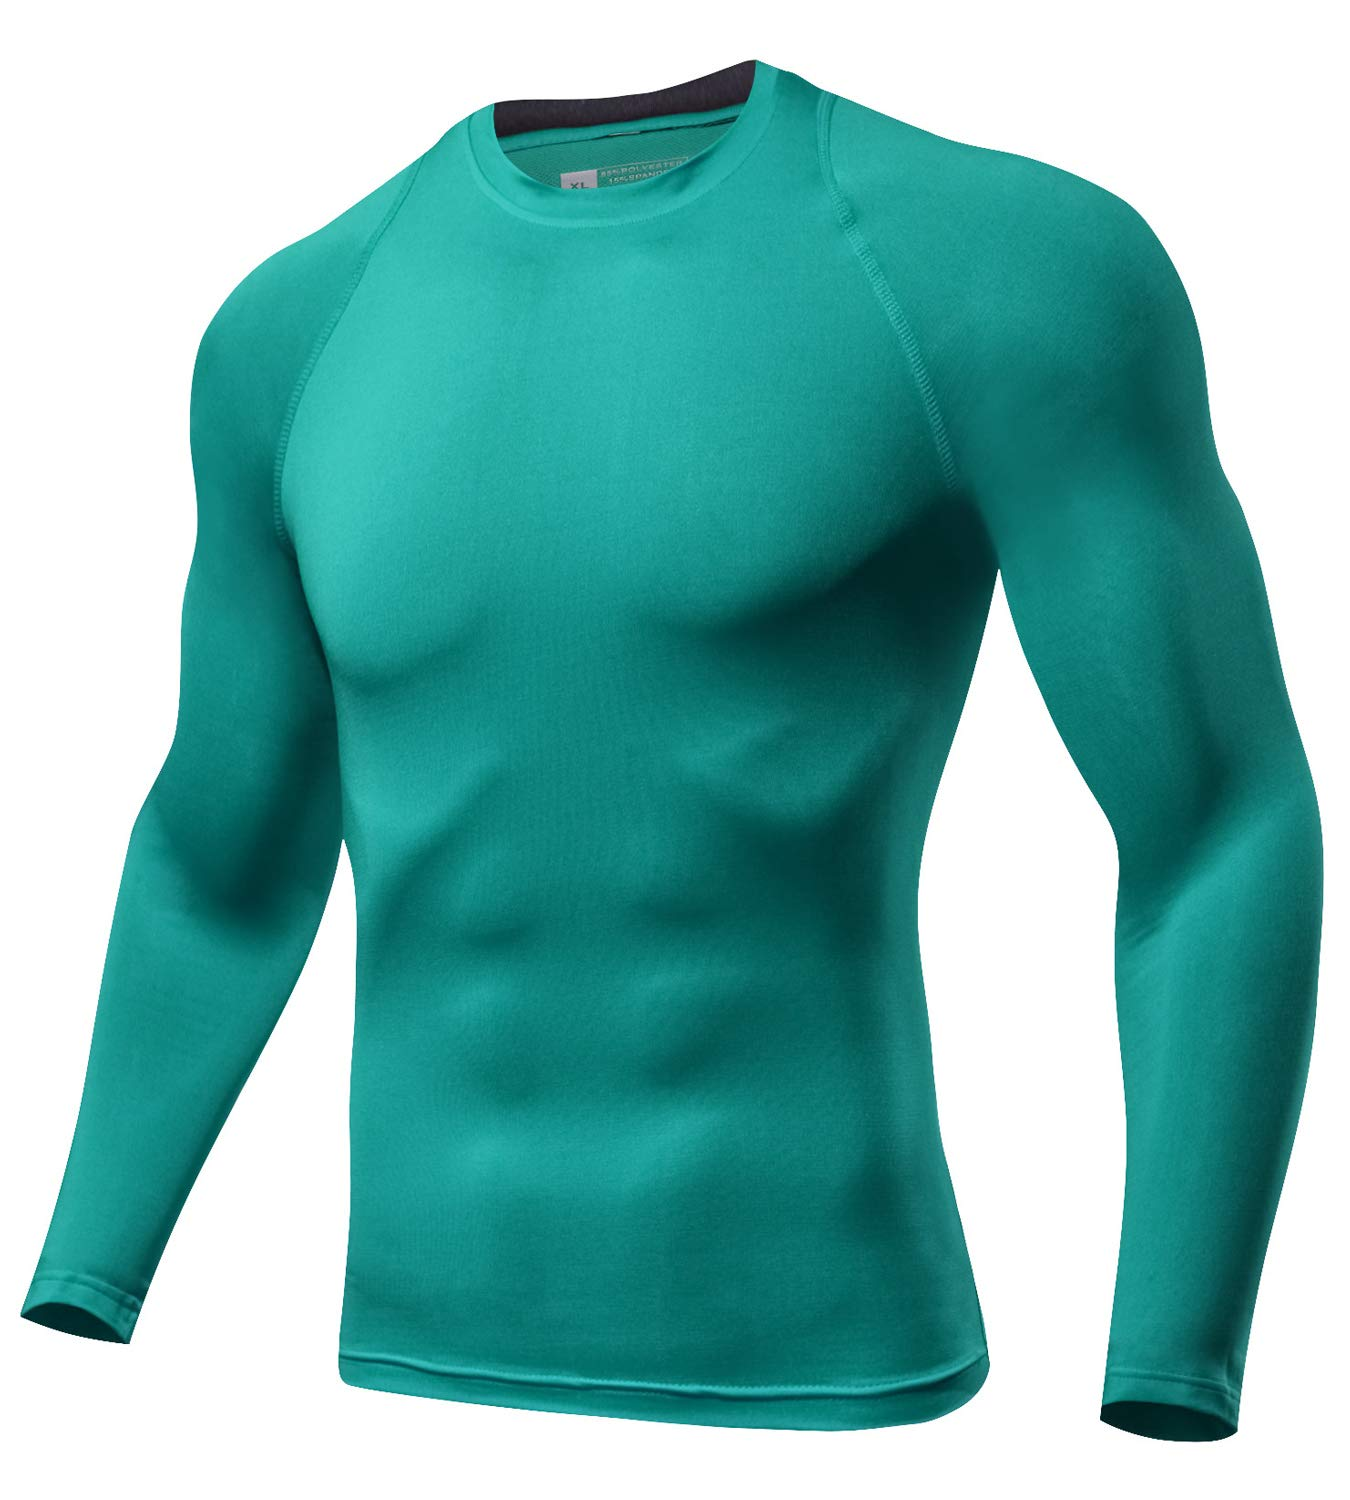 Lavento Men's Compression Shirts Crewneck Long-Sleeve Dri Fit Workout Shirts (1 Pack-Blue Green,Small)